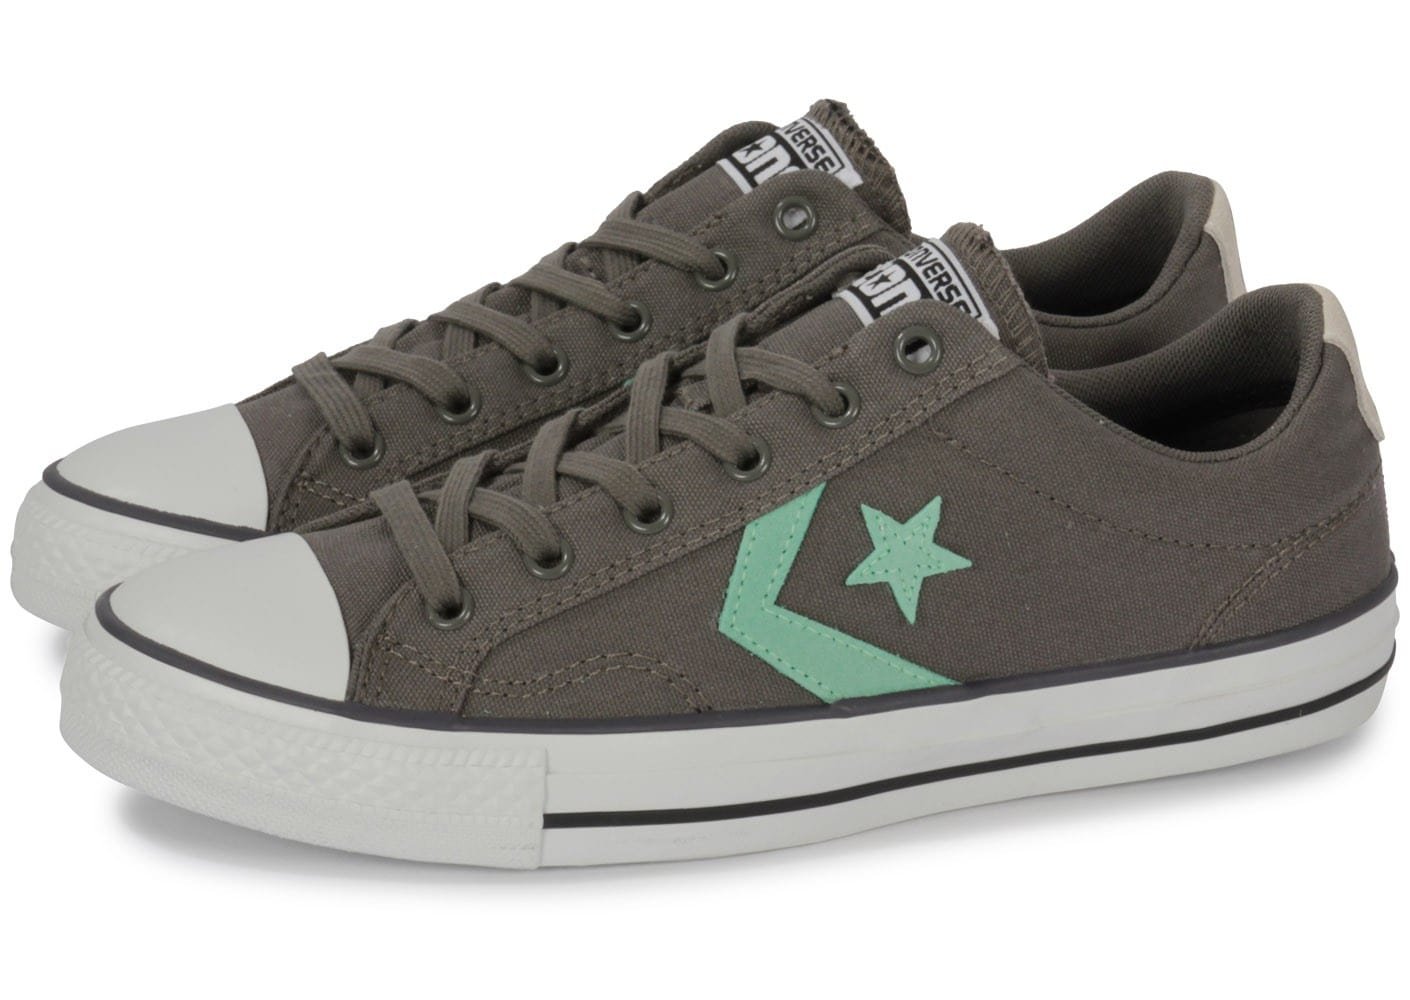 converse star player grise chaussures homme chausport. Black Bedroom Furniture Sets. Home Design Ideas